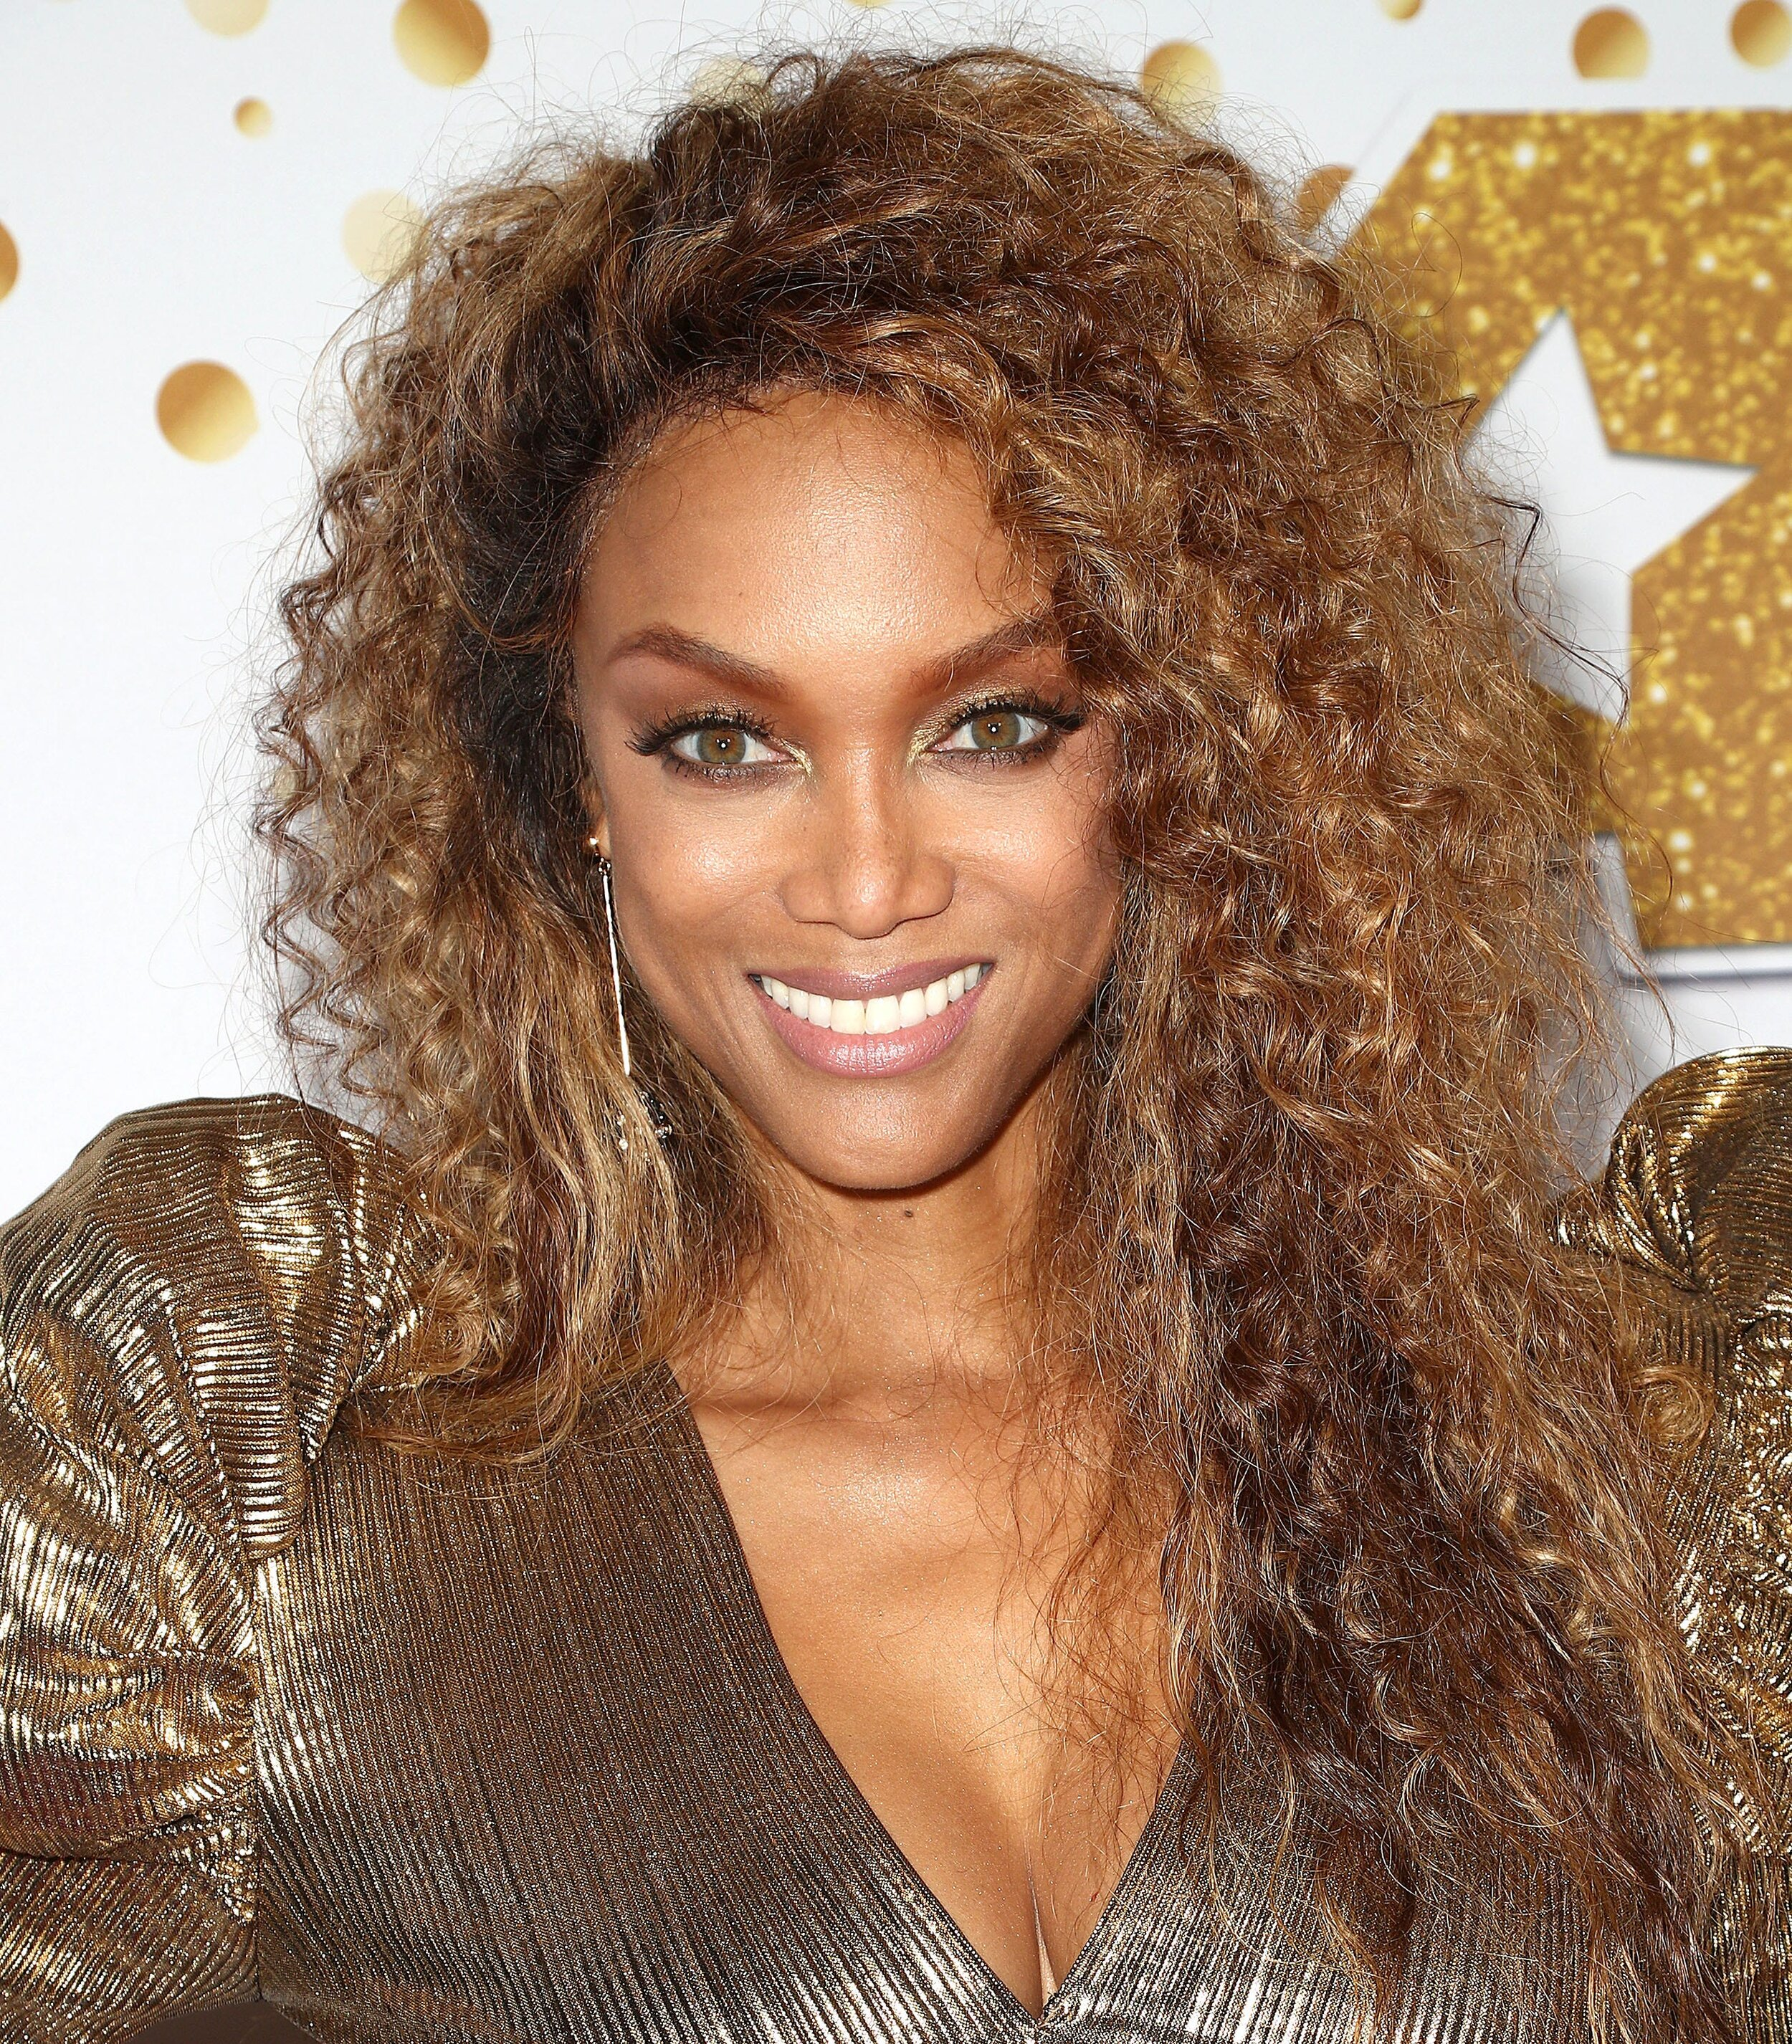 """""""You can have all the potential in the world, but unless you have confidence, you have nothing."""" -Tyra Banks - Image Source - USAtoday.com"""